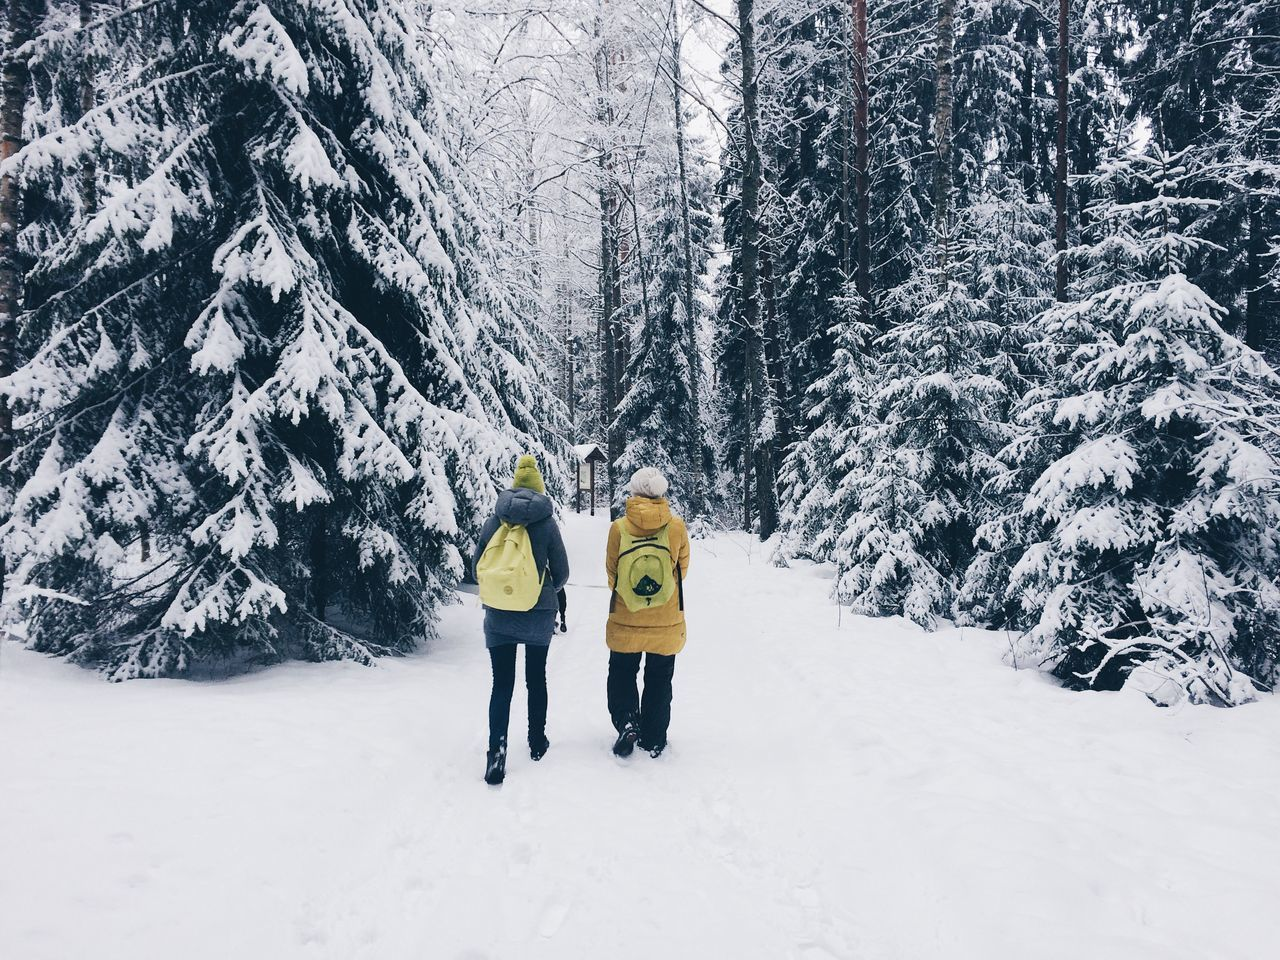 Adult Adults Only Beauty In Nature Cold Temperature Day Forest Friendship Leisure Activity Mature Adult Mountain Nature Only Men Outdoors People Scenics Ski Holiday Snow Togetherness Tree Two People Warm Clothing Winter Winter Sport Young Adult